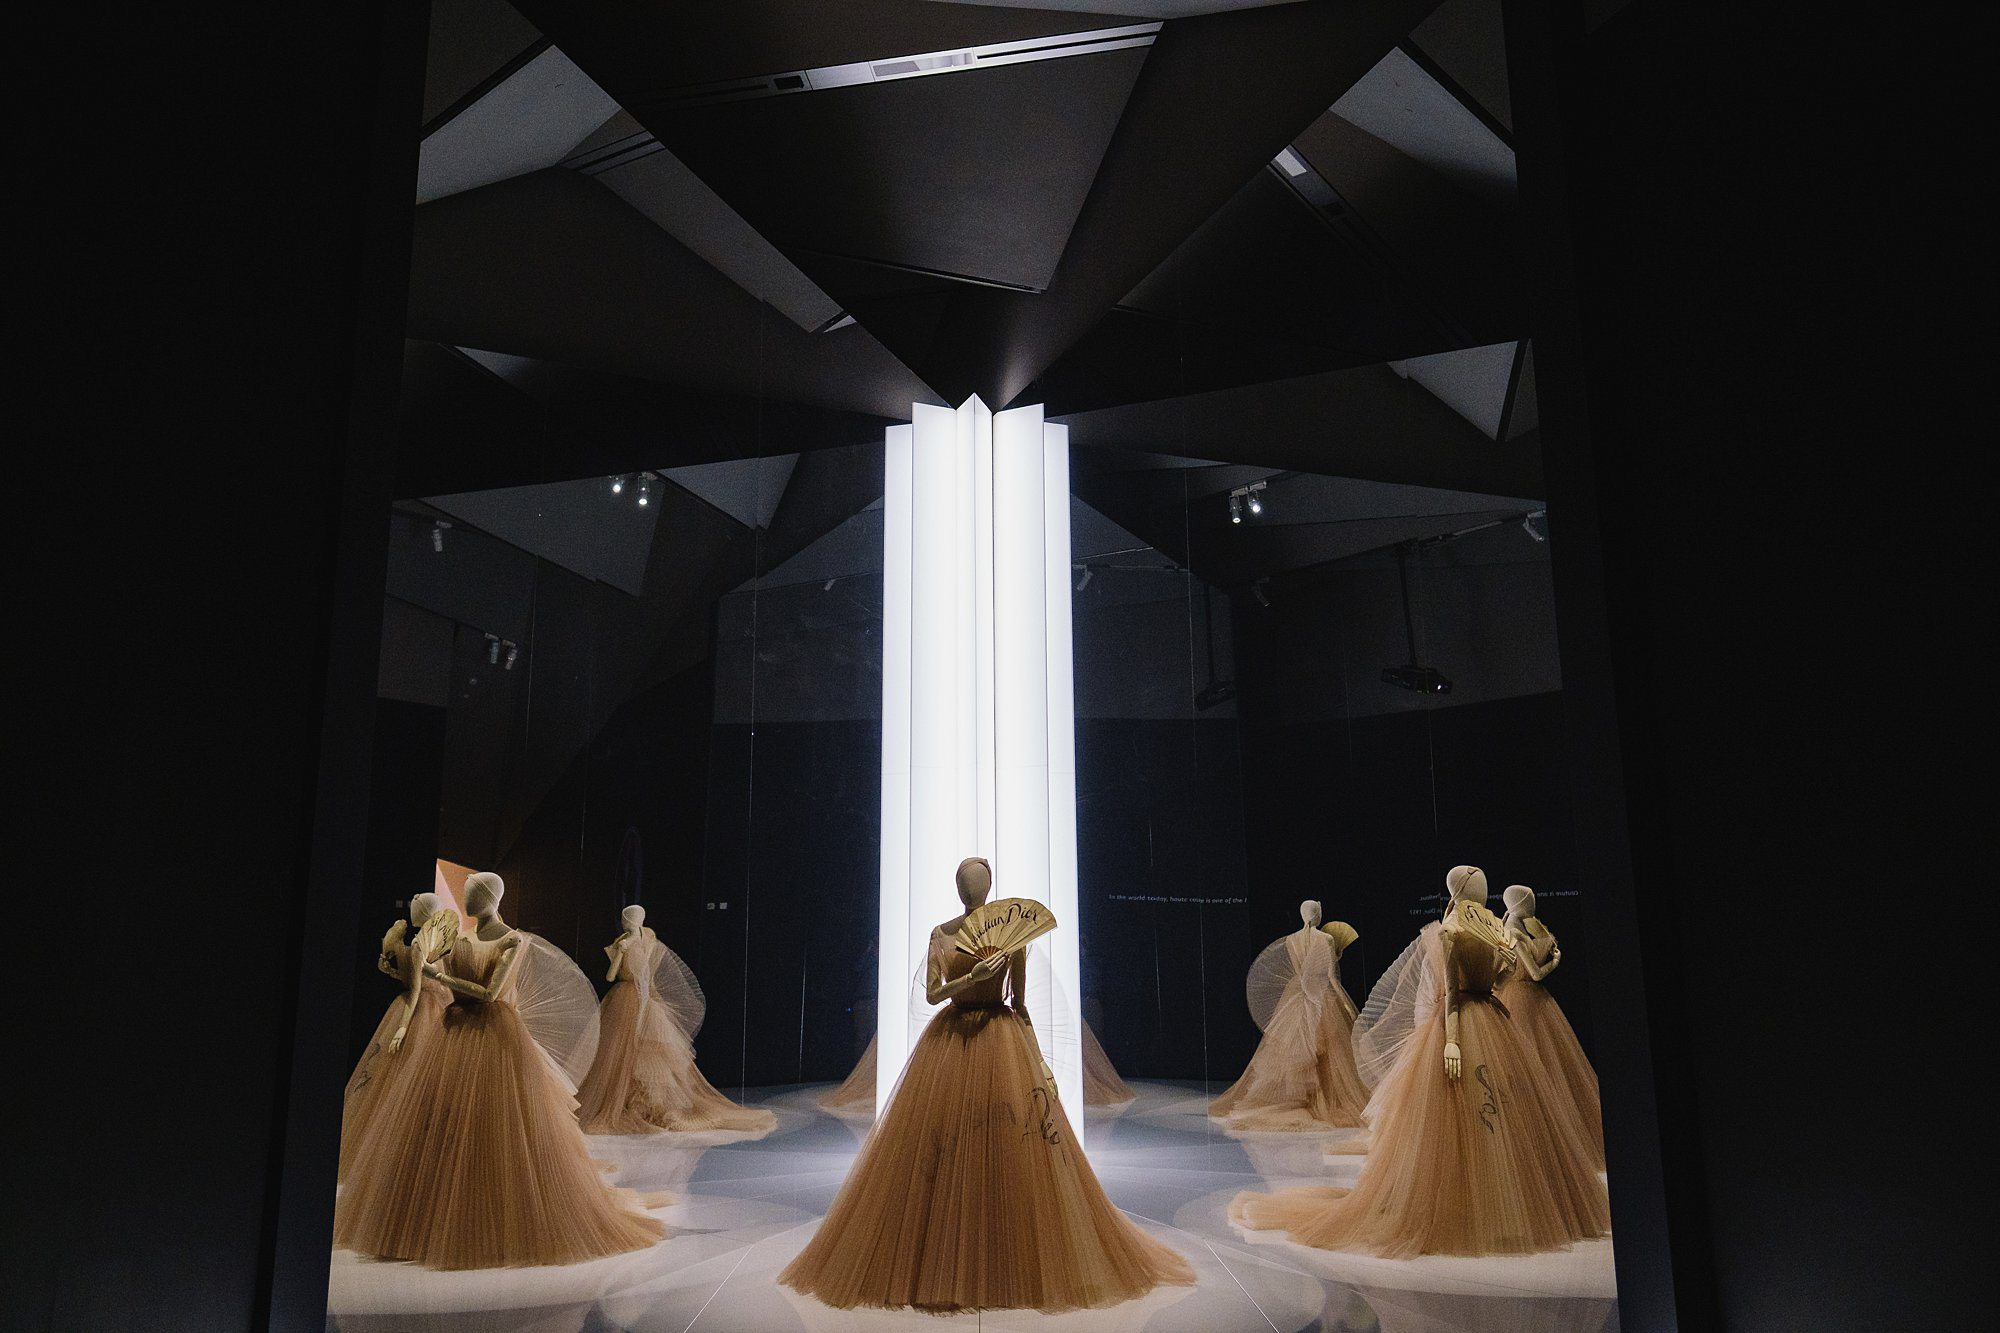 victoria albert event photographer london 056 - The Christian Dior Exhibition at the V&A